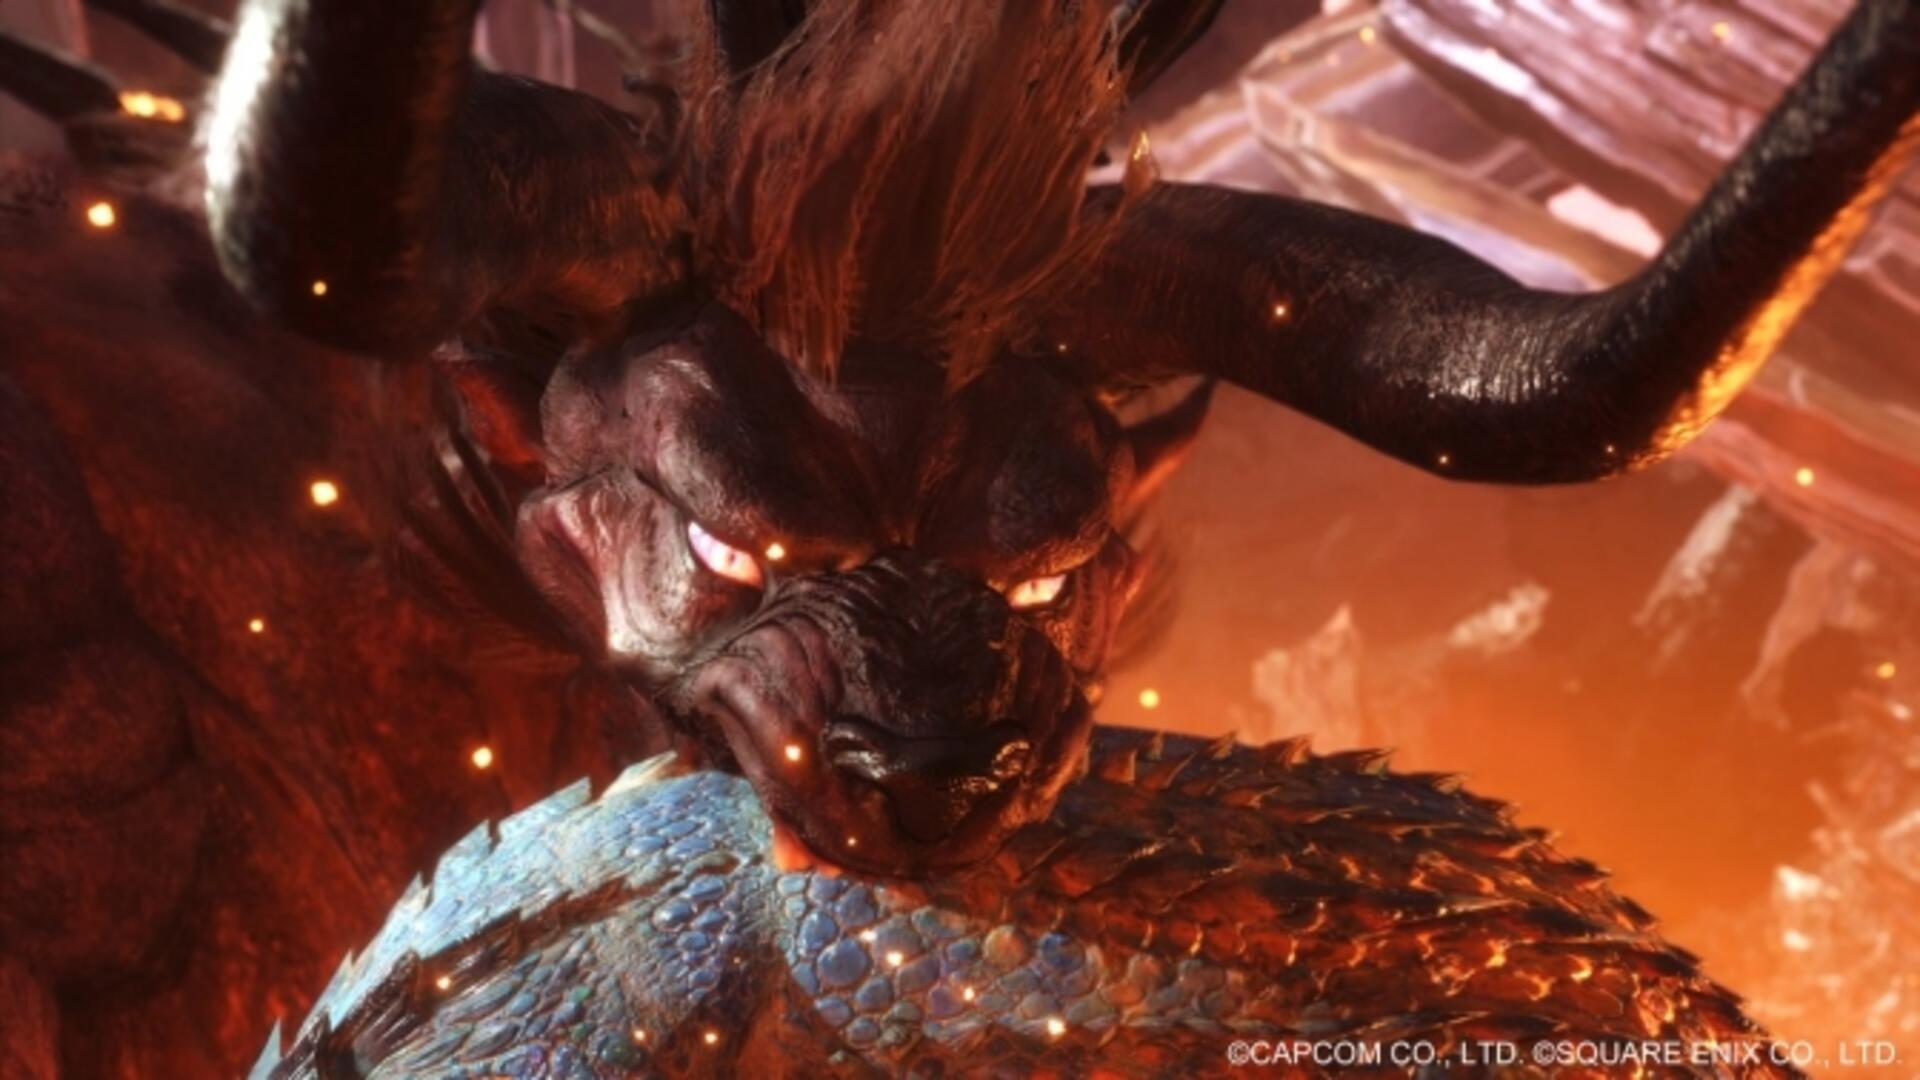 Final Fantasy 14's Behemoth Coming to Monster Hunter World in August